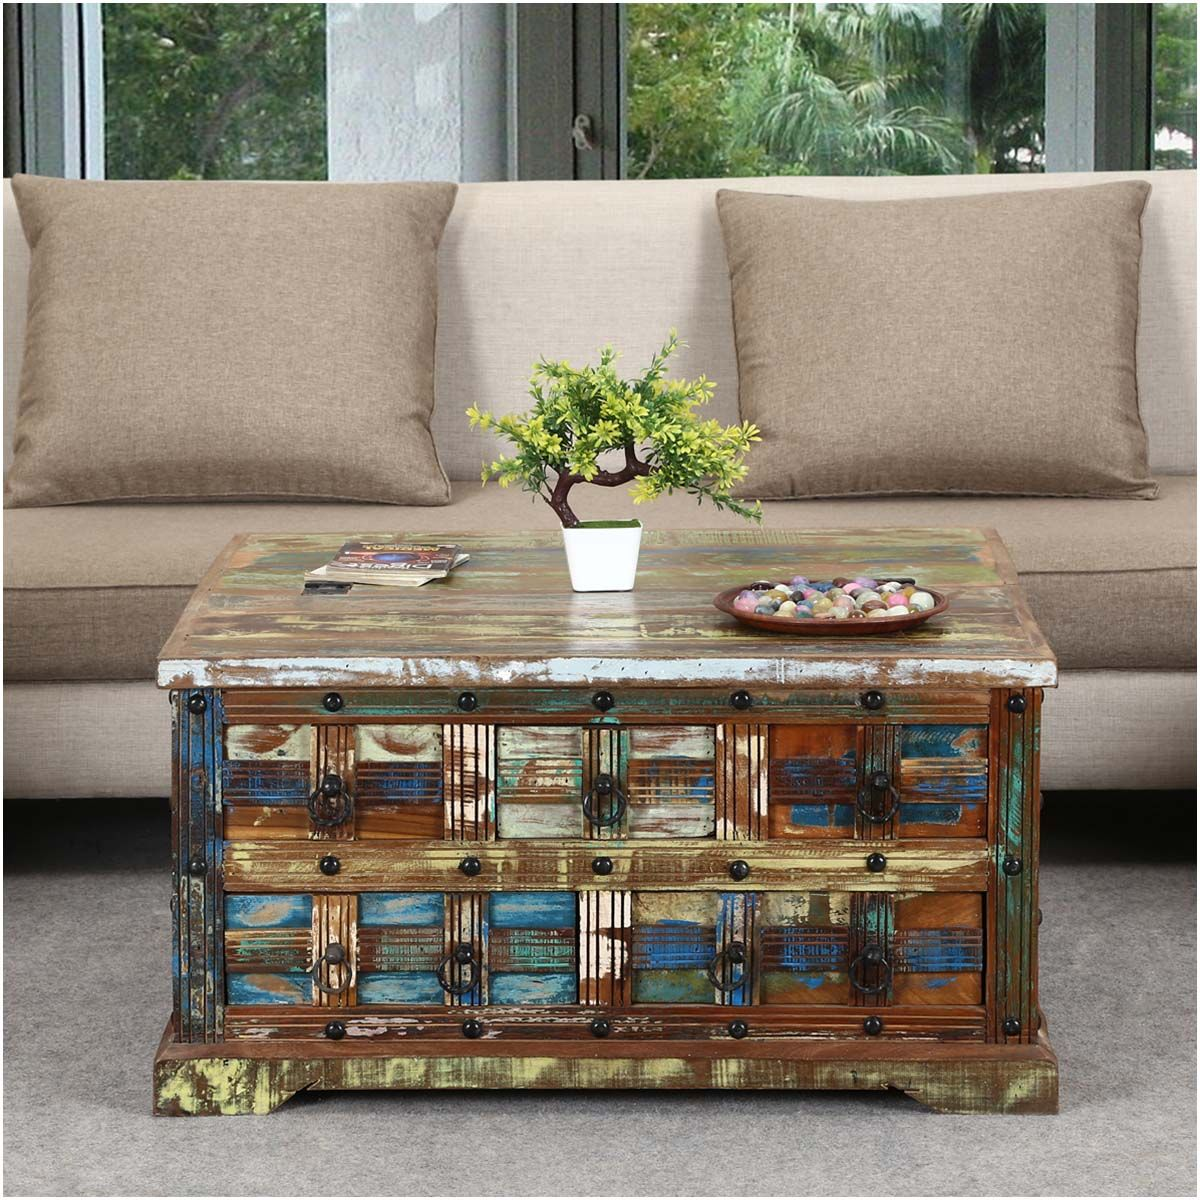 Couchtisch Serviettentechnik Holz Kommode Couchtisch 2018 Table Living Room Und Decorating